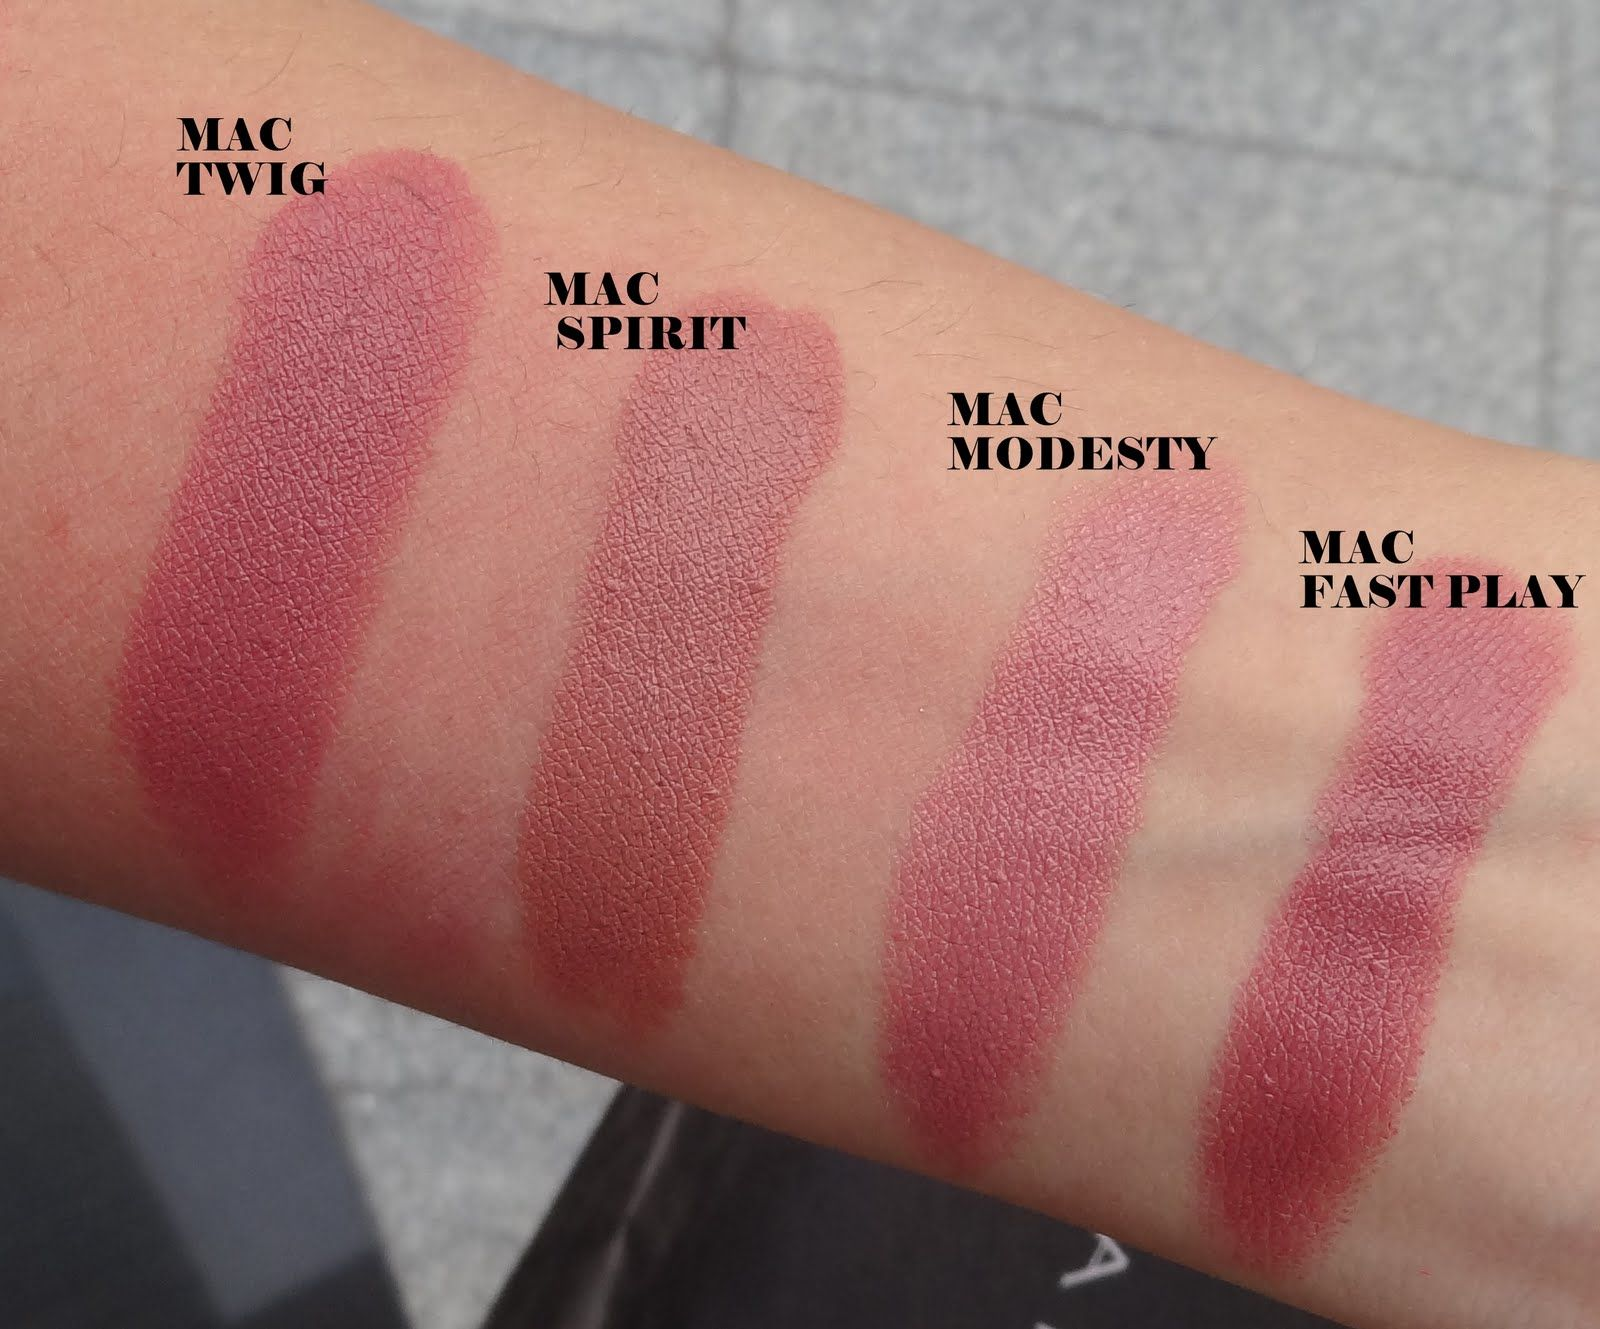 Wonderbaarlijk Mac Lipstick Swatches: Part 2 (With images) | Mac lipstick BM-58